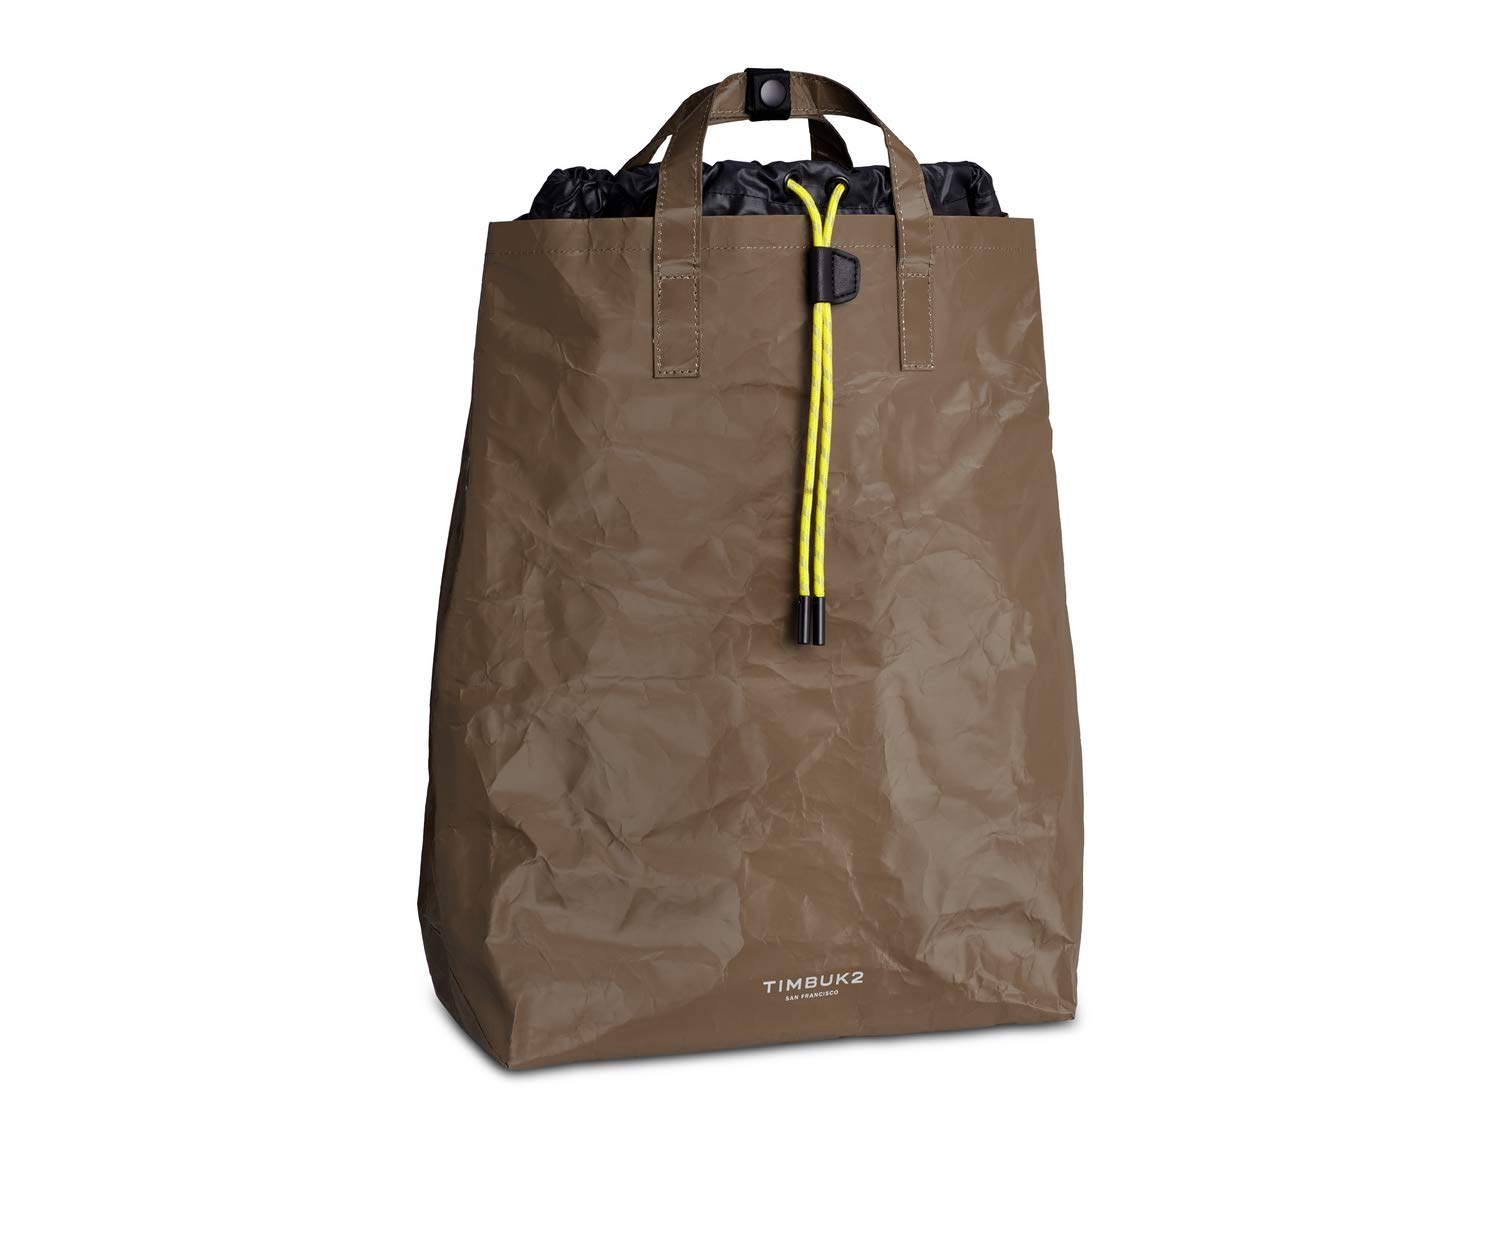 Timbuk2 Dave Ortiz Paper Bag Backpack Combo - Silt by Timbuk2